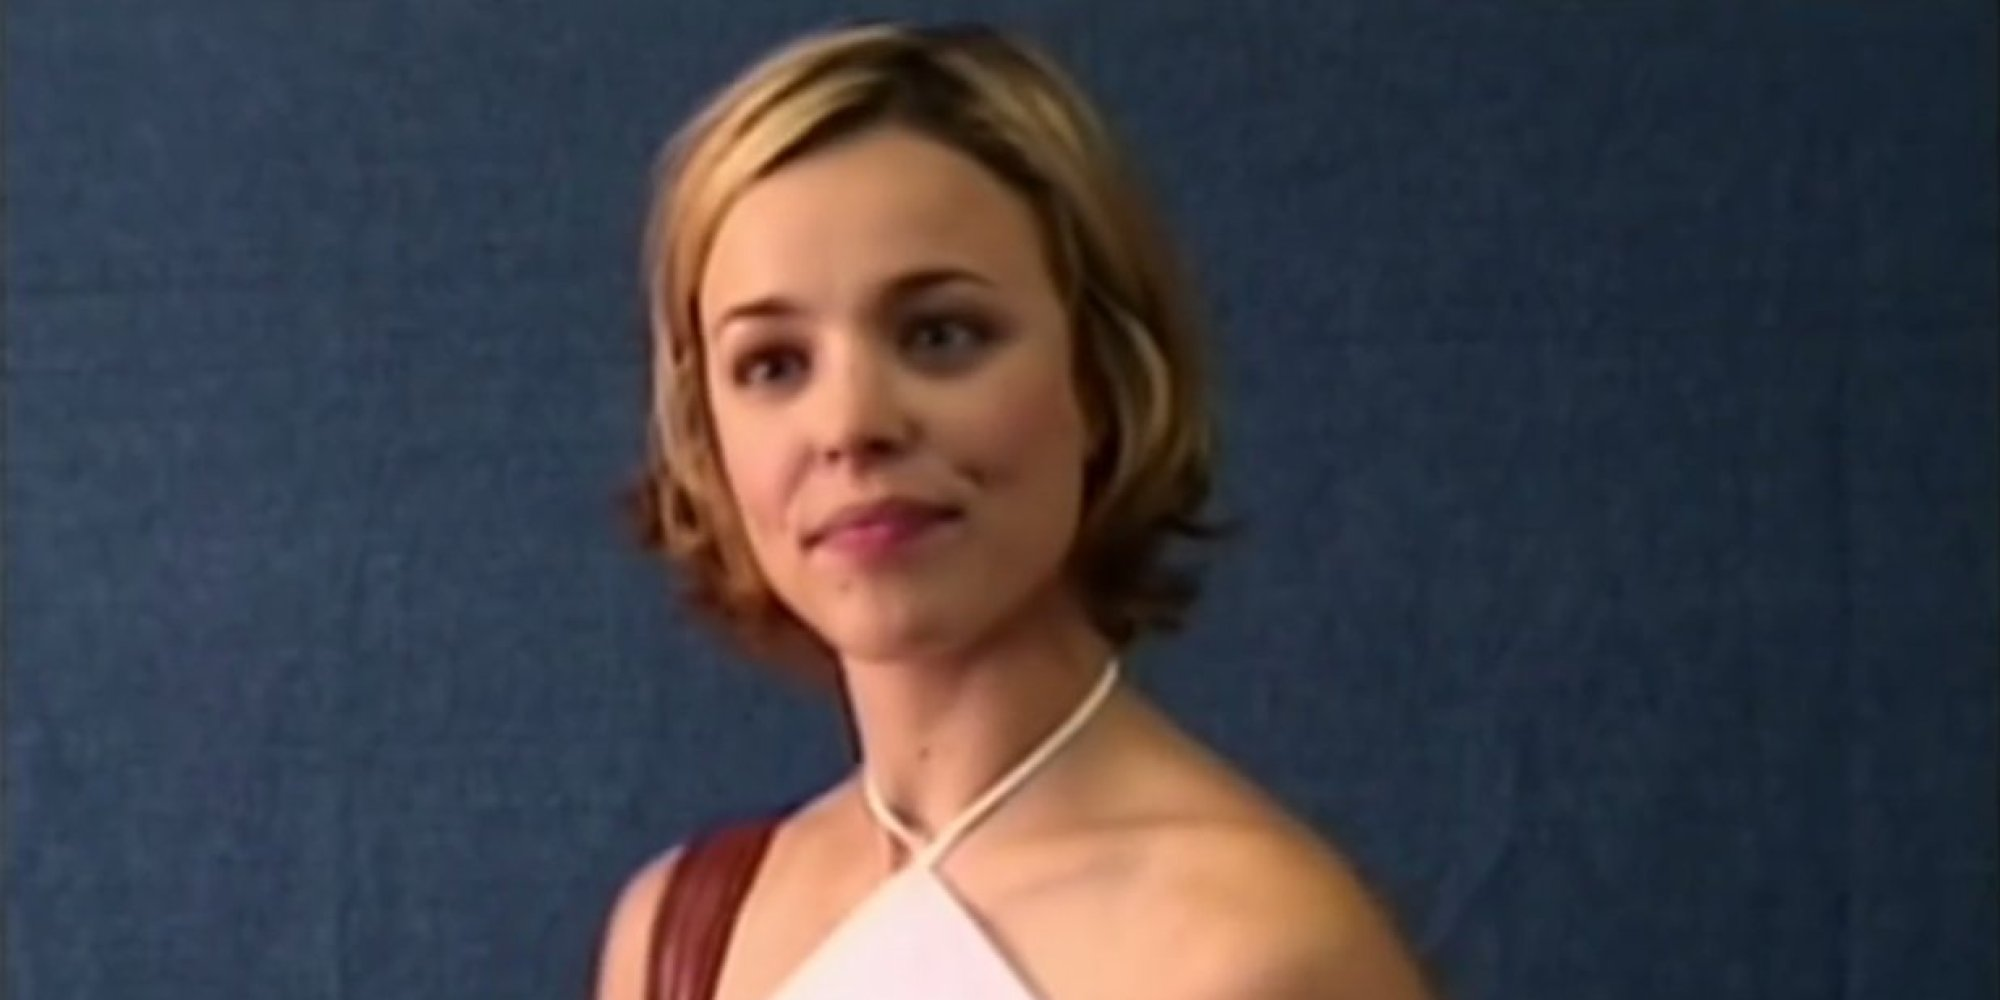 unites states maps with Rachel Mcadams Notebook Audition Tape N 5526704 on El Capitan also 1366 Beaufort NC United States as well Fluorite together with Lizenzfreies Stockfoto Centralia Staat Washington Image35070875 furthermore Rachel Mcadams Notebook Audition Tape n 5526704.